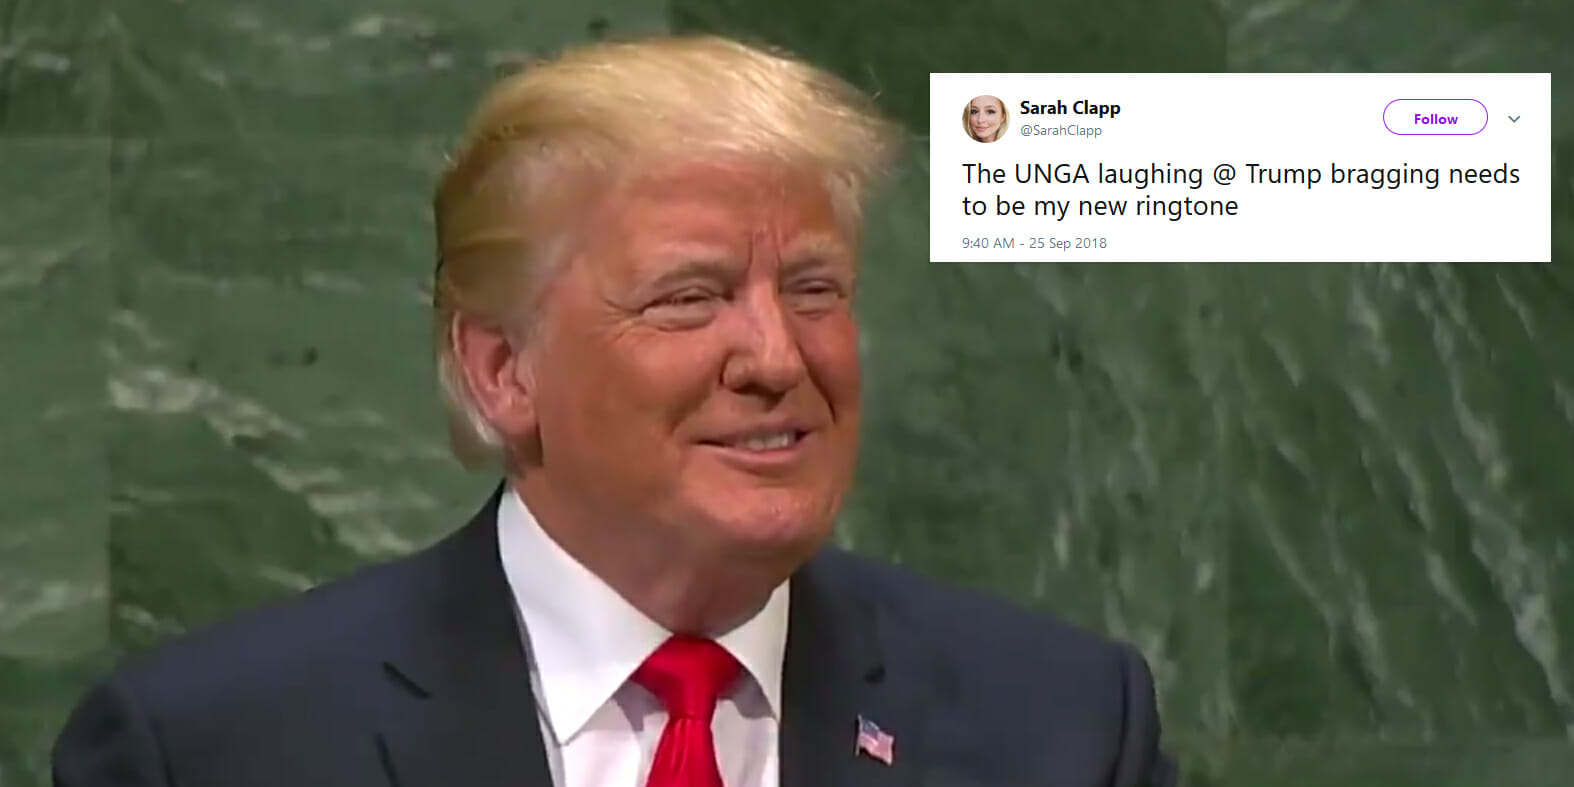 Rayo vallecano de madrid, s.a.d   986 followers on linkedin. WATCH: Trump Draws Laughs From UN After Touting His